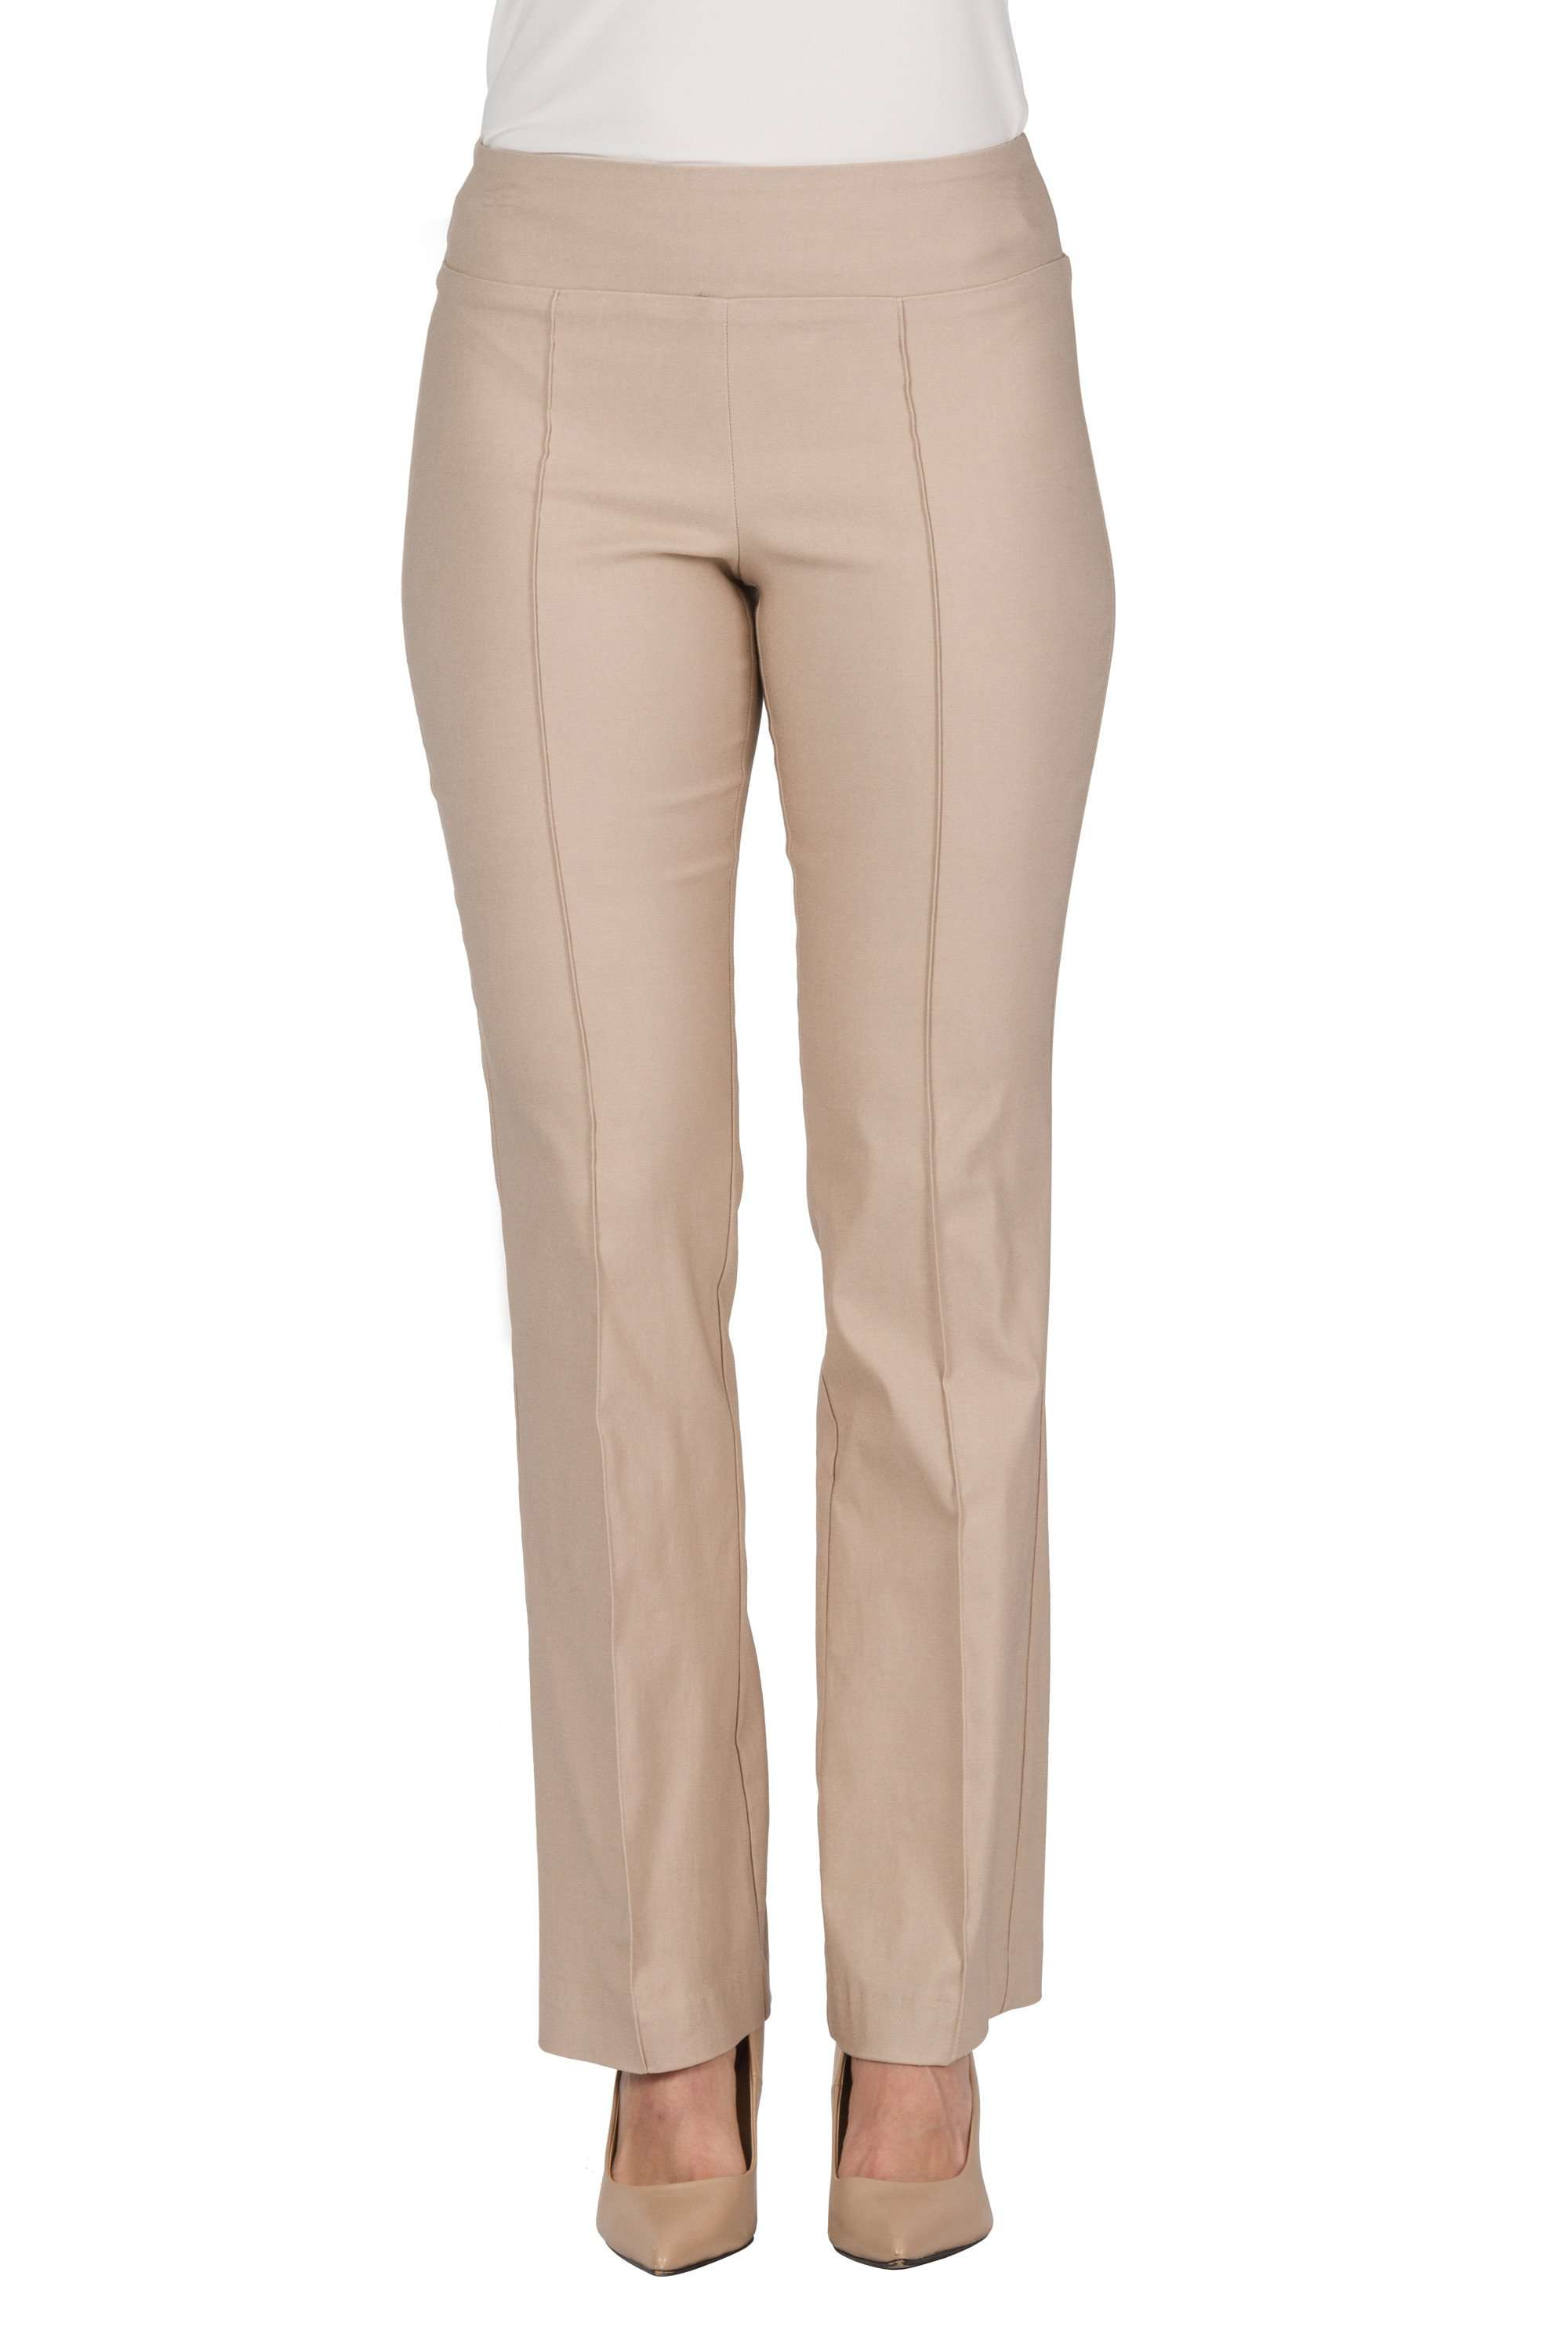 Beige Pant Yvonne Marie Miracle Pant-Slimming Fit-Comfort and Style all In One - Yvonne Marie